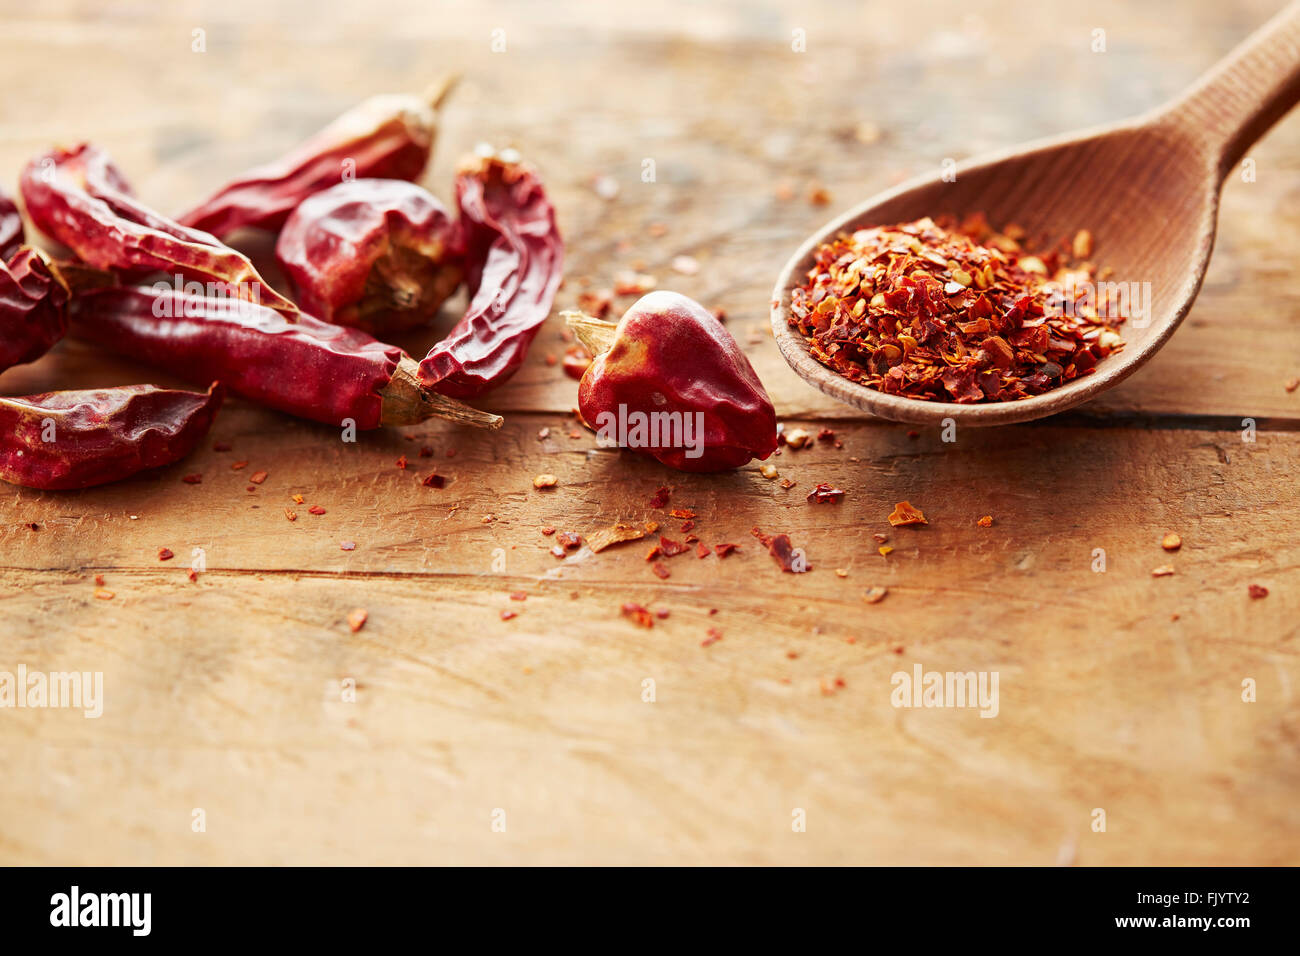 Wooden spoon with red chili pepper flakes and whole red peppers - Stock Image